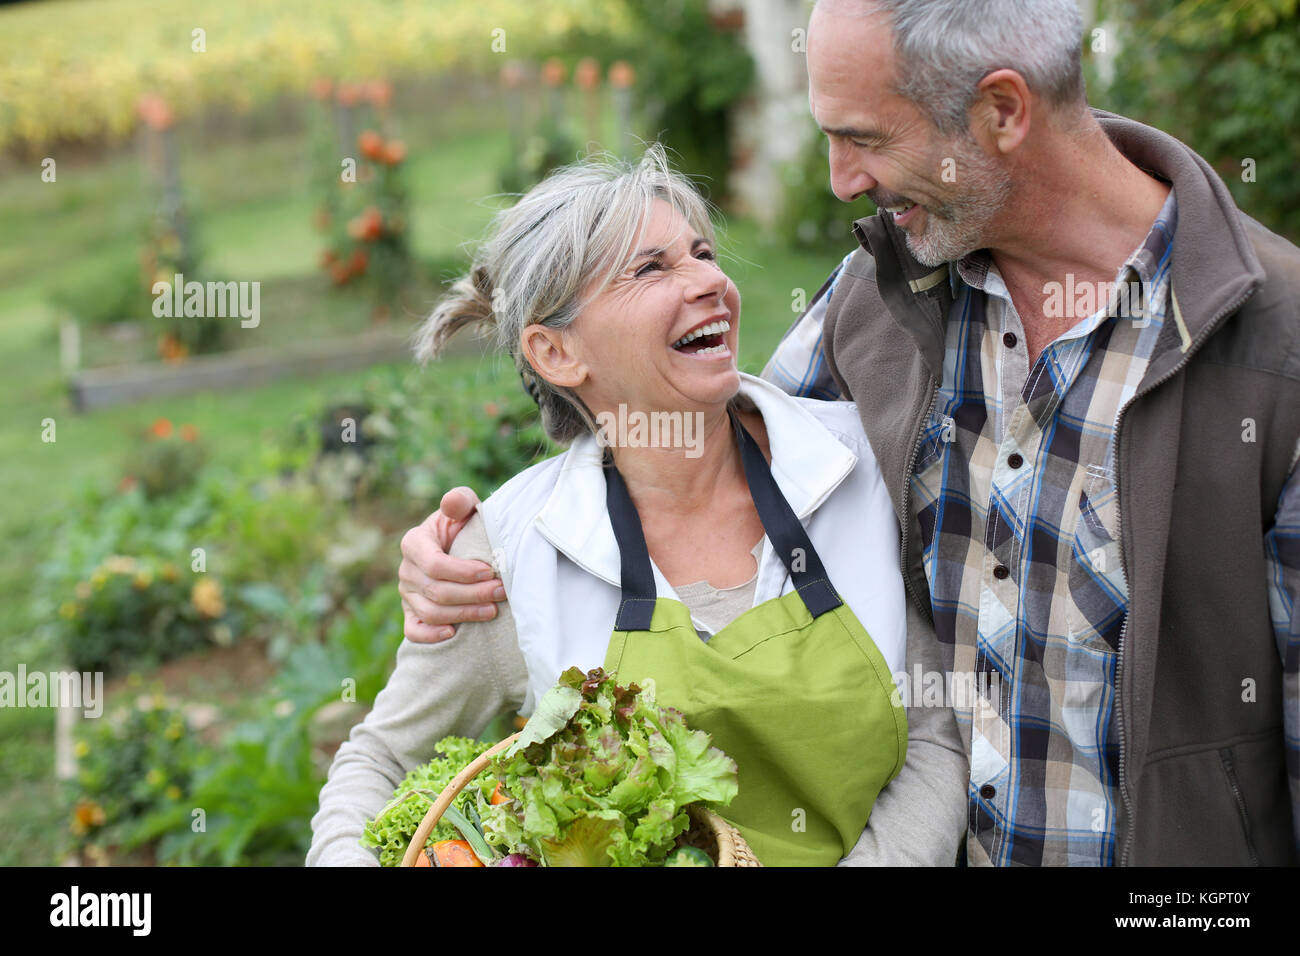 Husband and wife enjoying being in kitchen garden Stock Photo